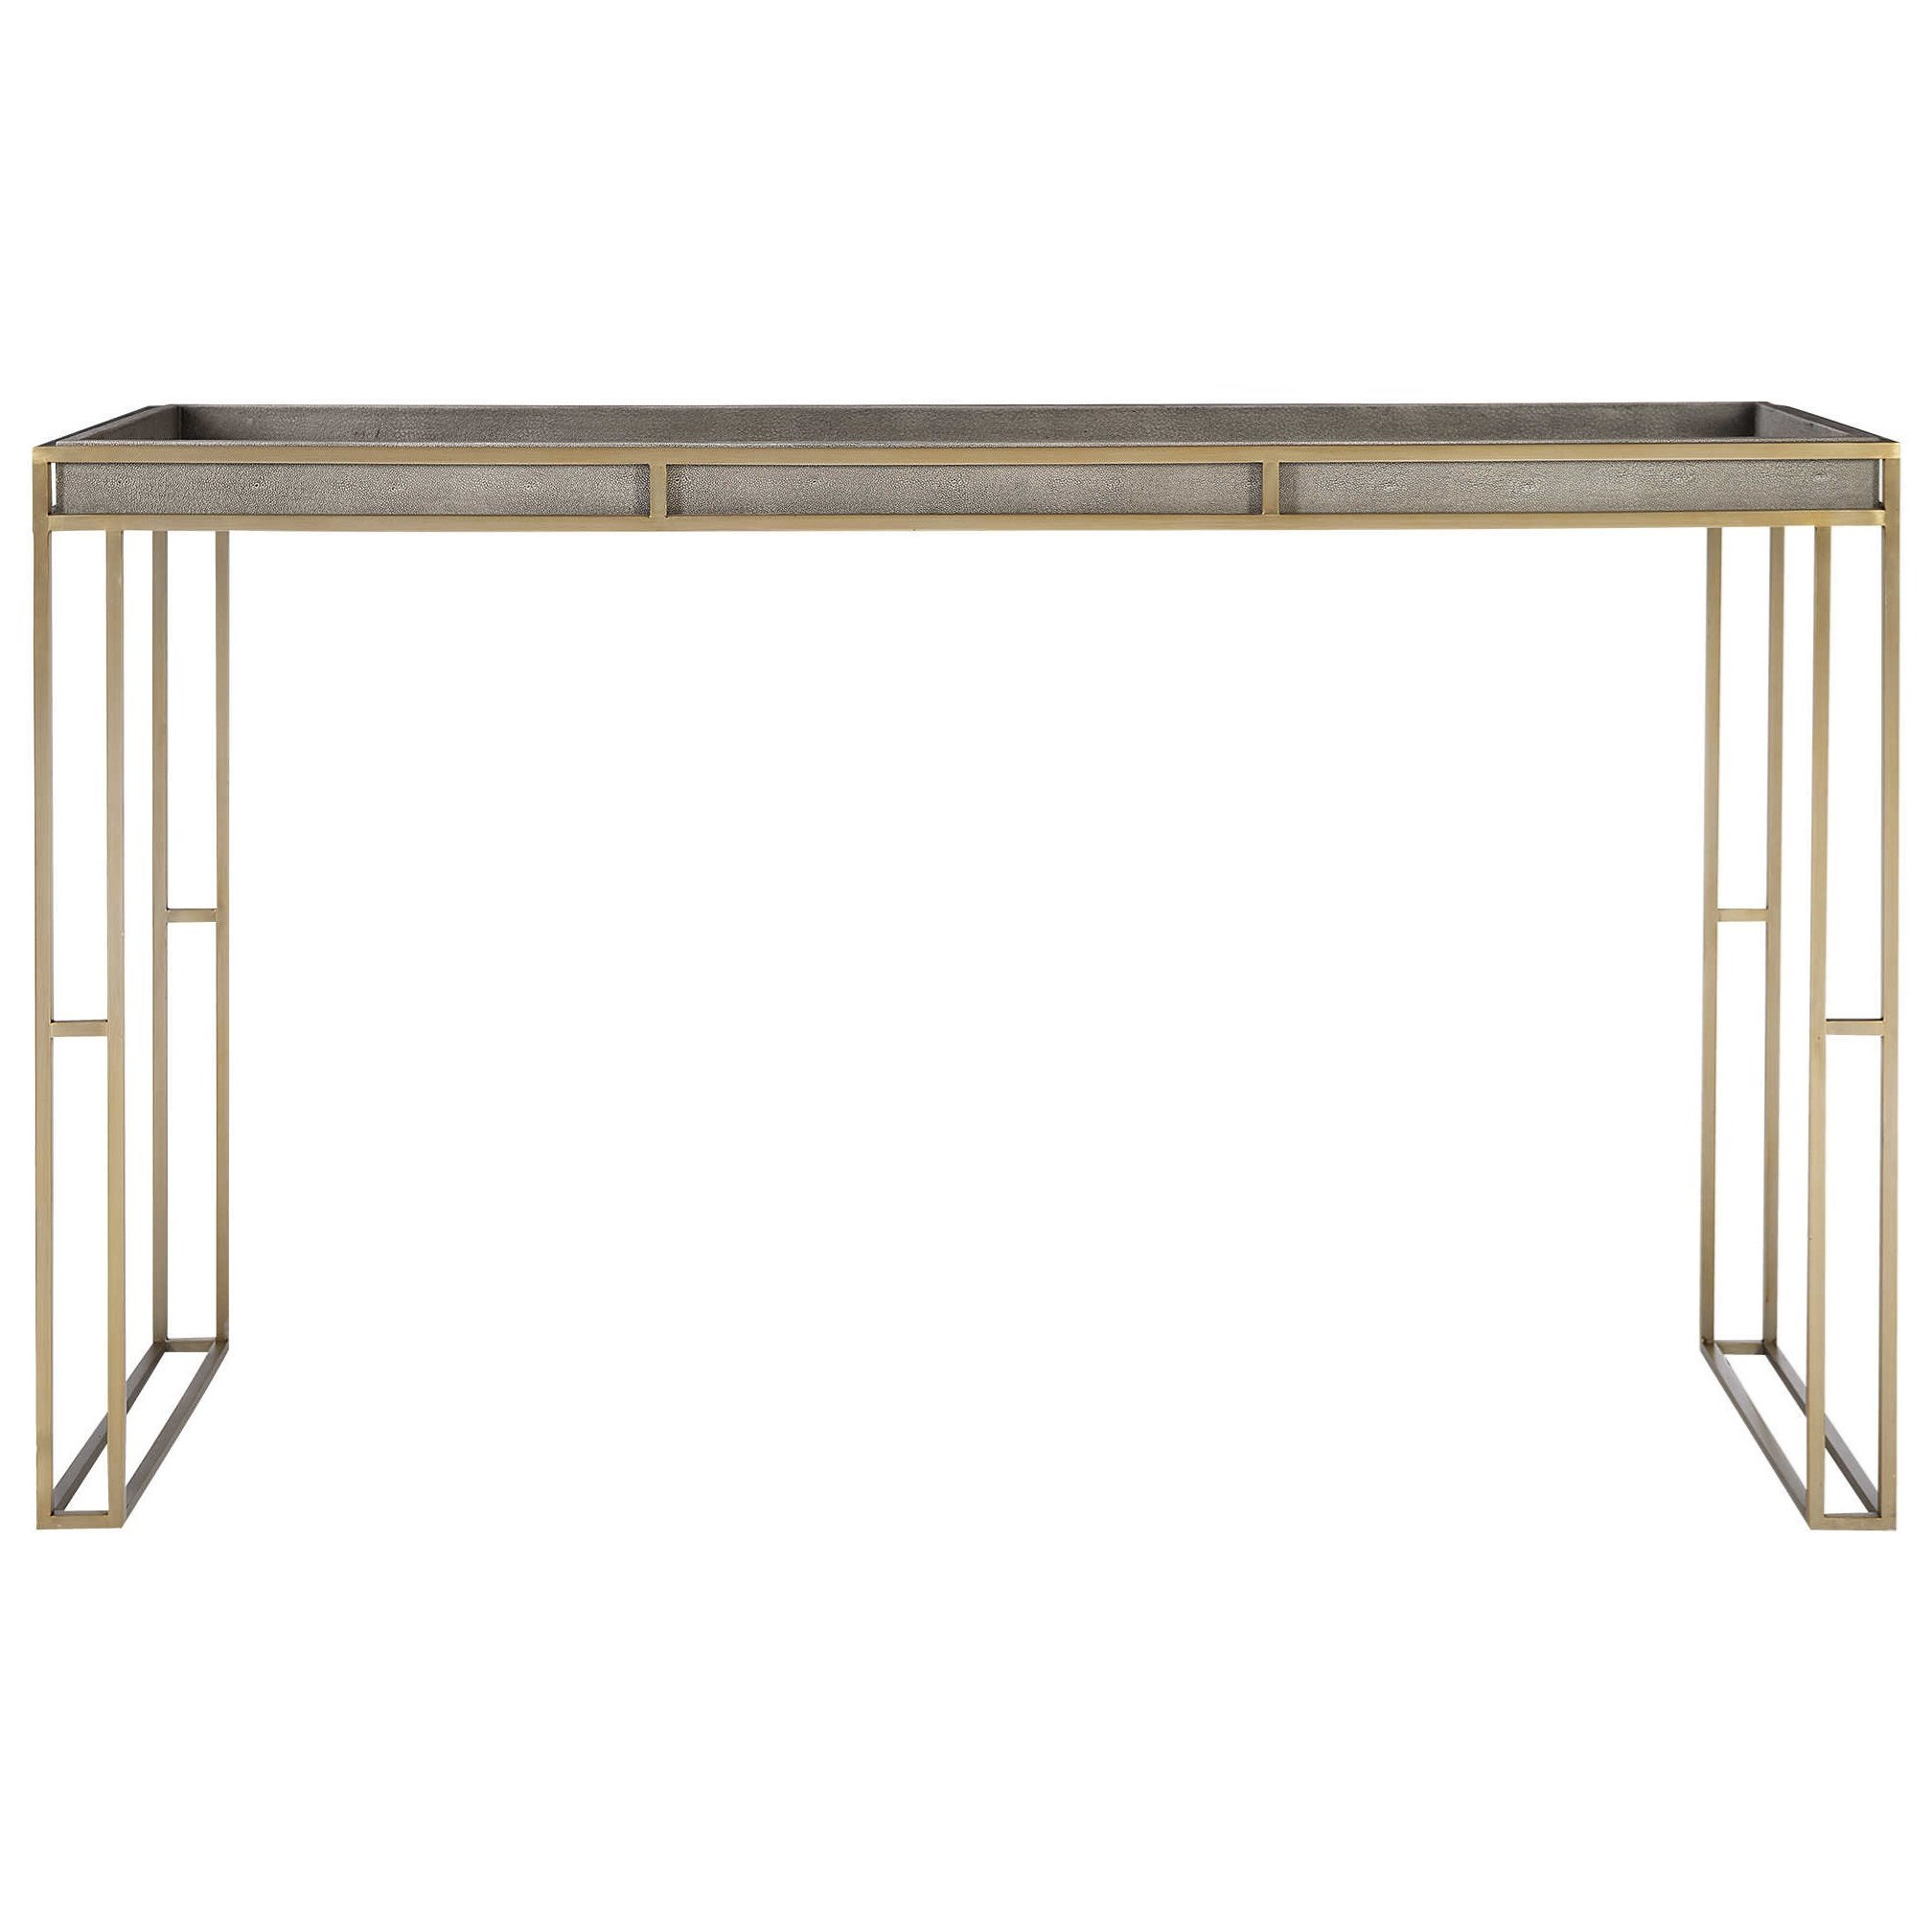 Accent Furniture - Occasional Tables Cardew Modern Console Table by Uttermost at Mueller Furniture